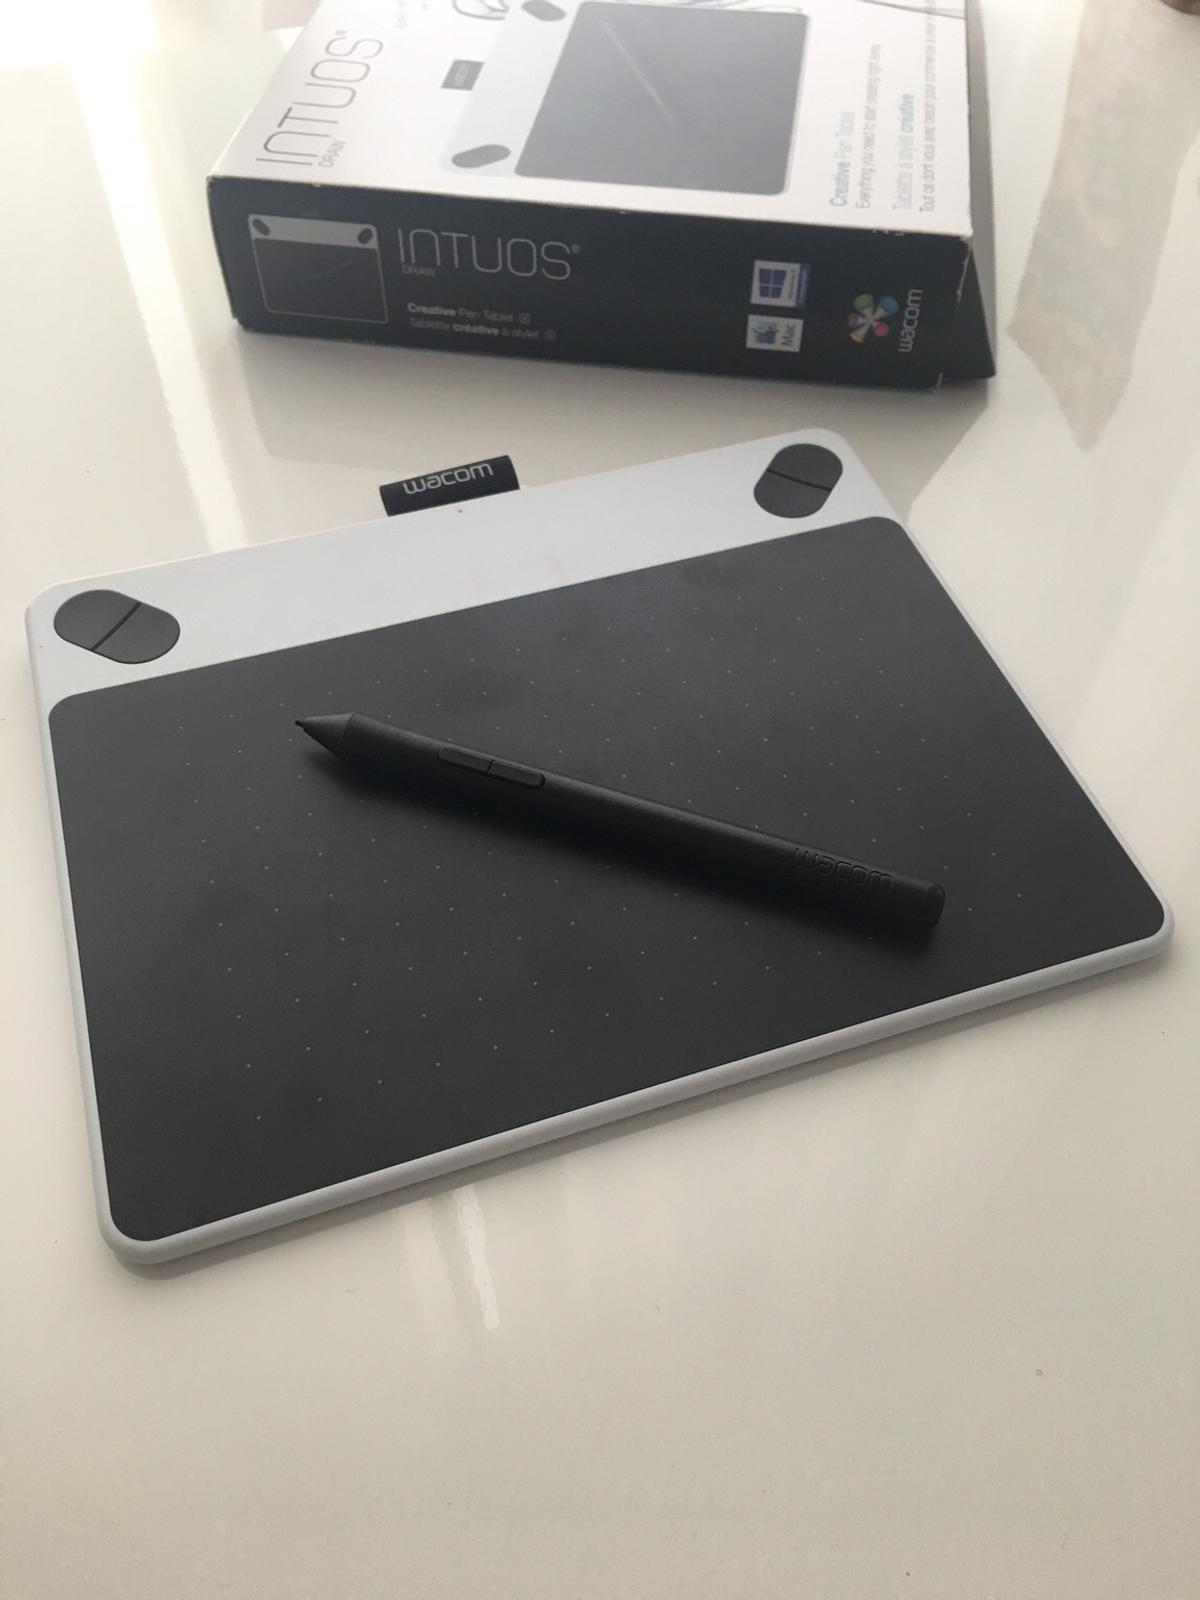 Wacom Intuos Draw Pen and Tablet in White